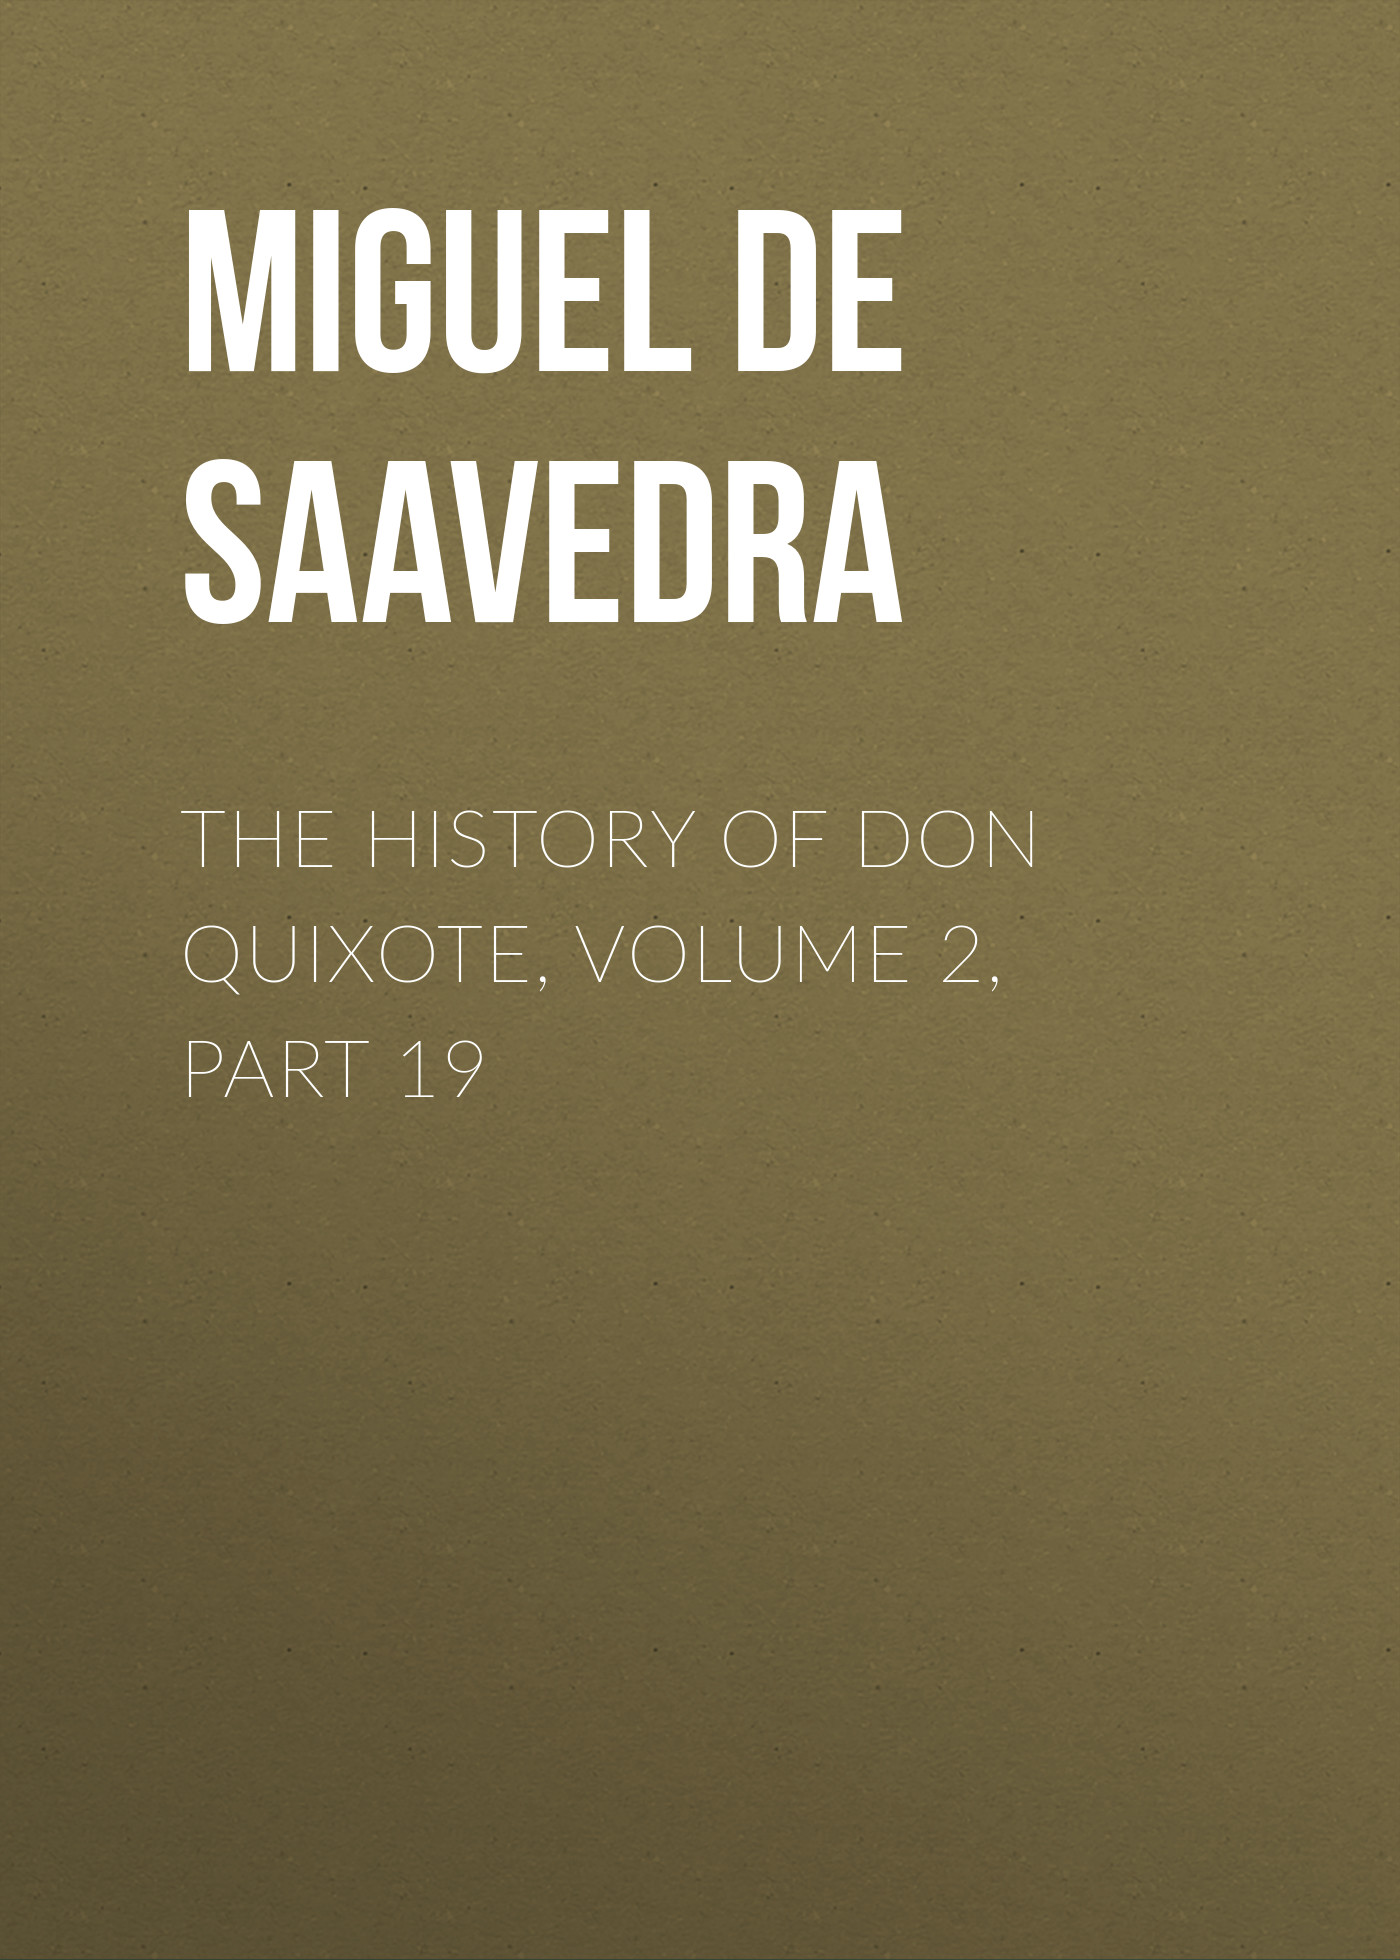 Мигель де Сервантес Сааведра The History of Don Quixote, Volume 2, Part 19 rasmus björn anderson the heimskringla a history of the norse kings volume 5 part 2